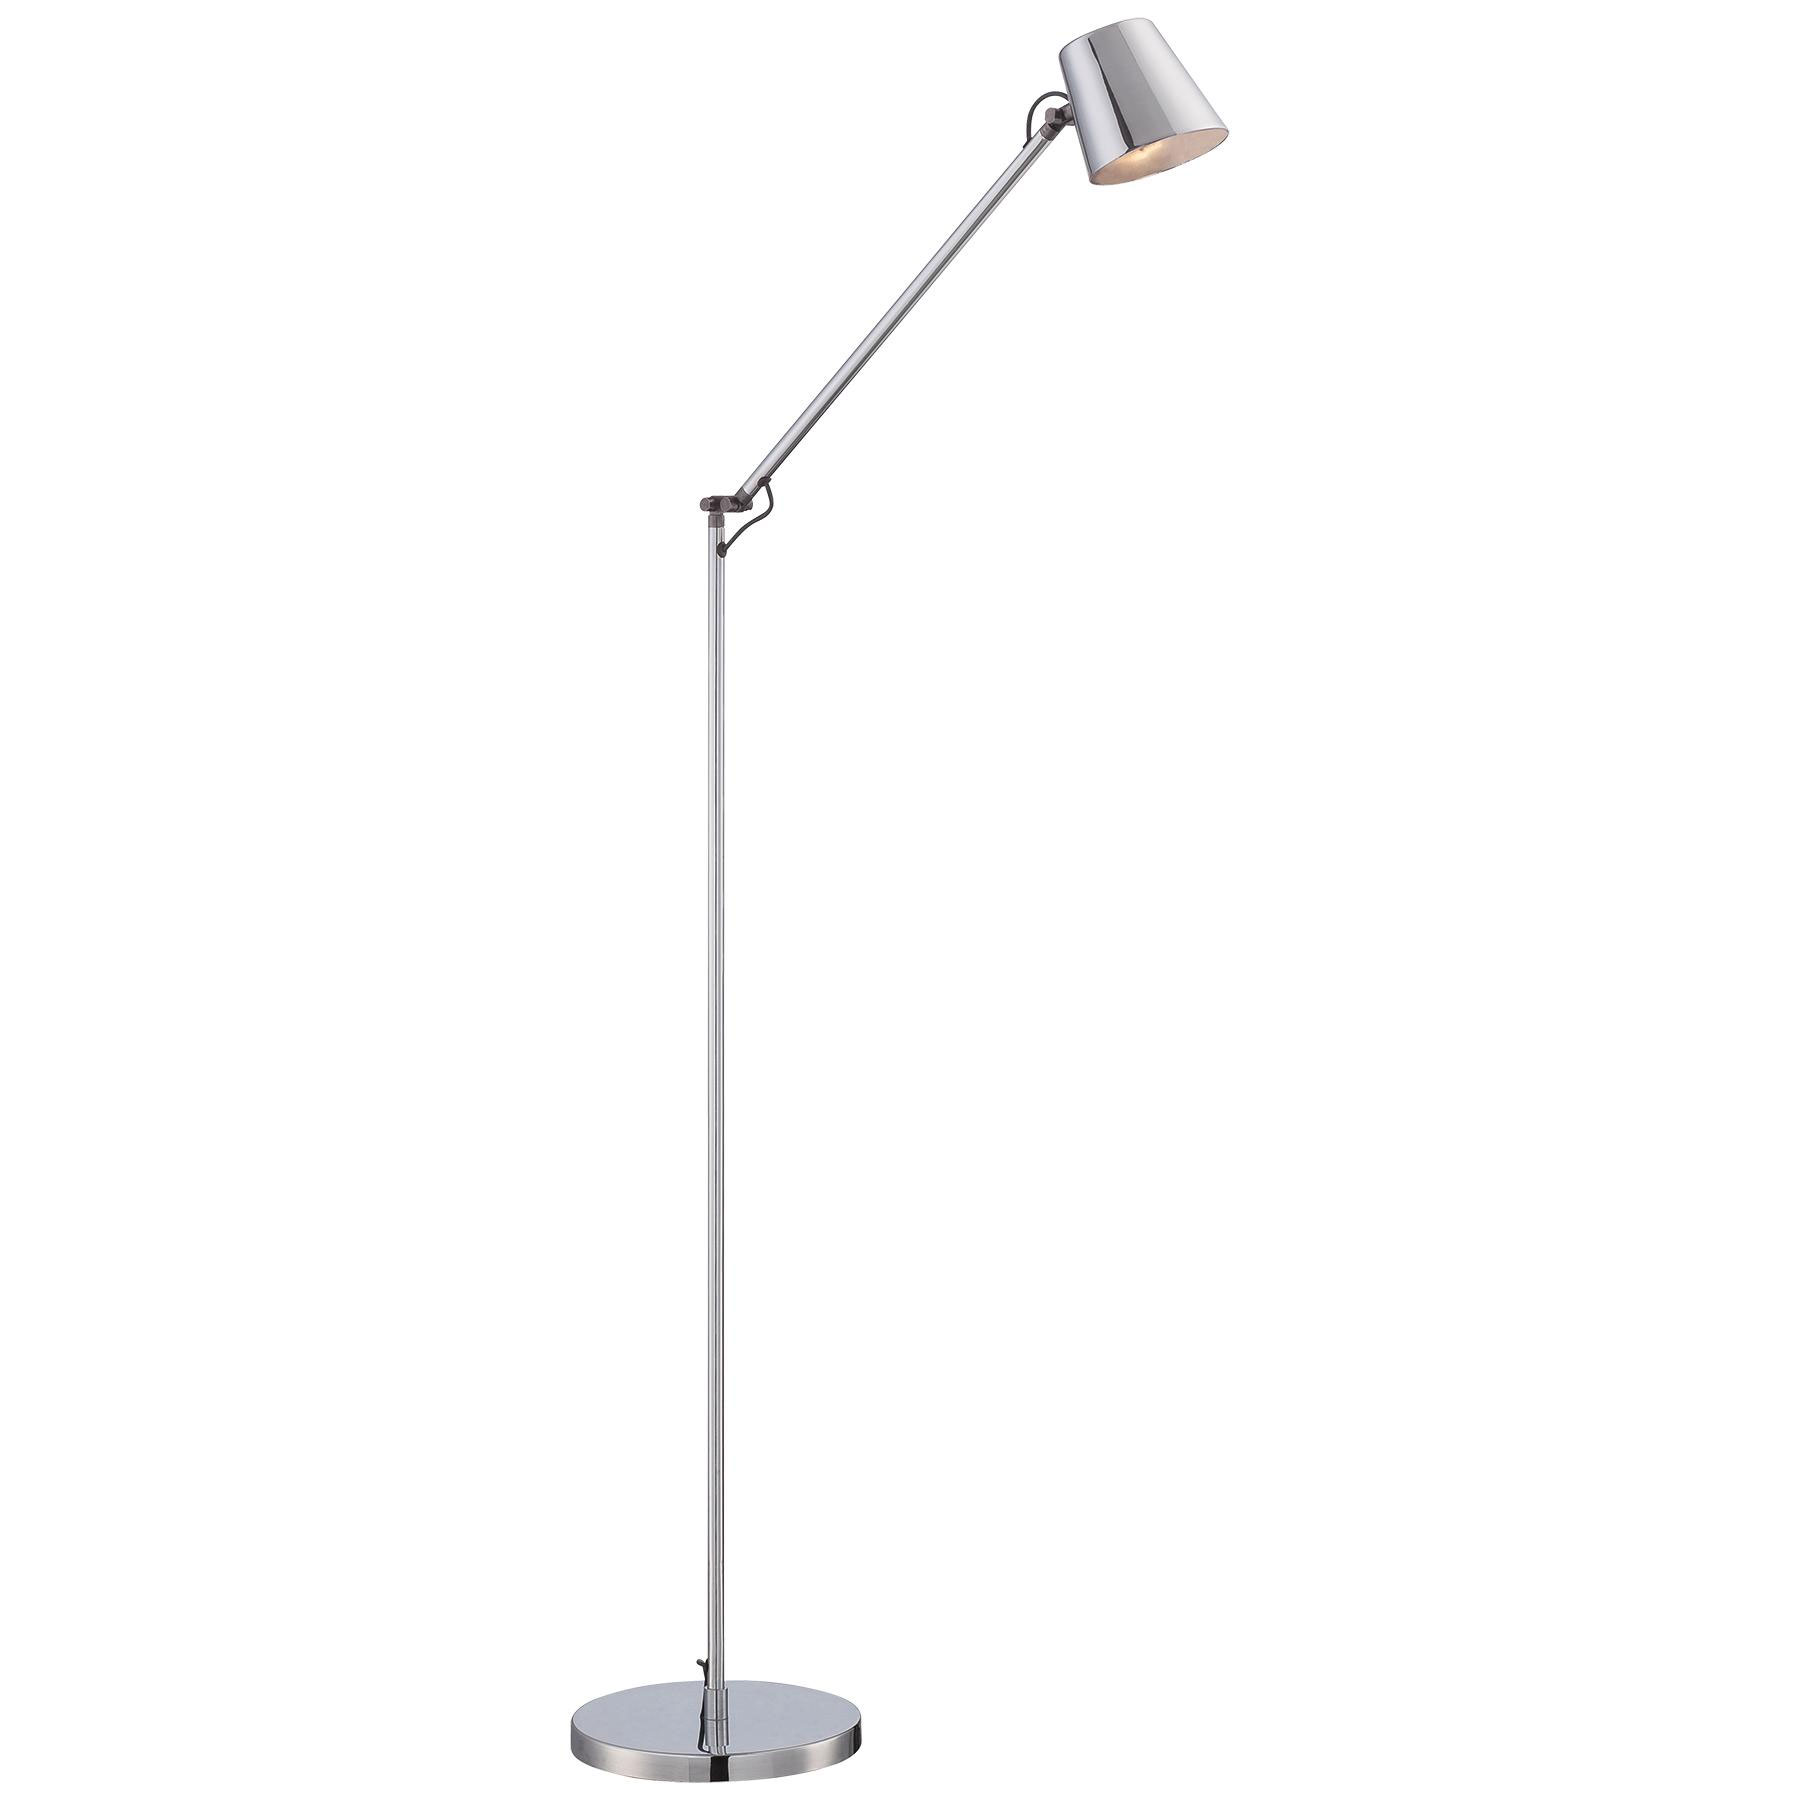 Led floor task lamp by george kovacs p303 2 077 l p303 led floor task lamp by george kovacs p303 2 077 l mozeypictures